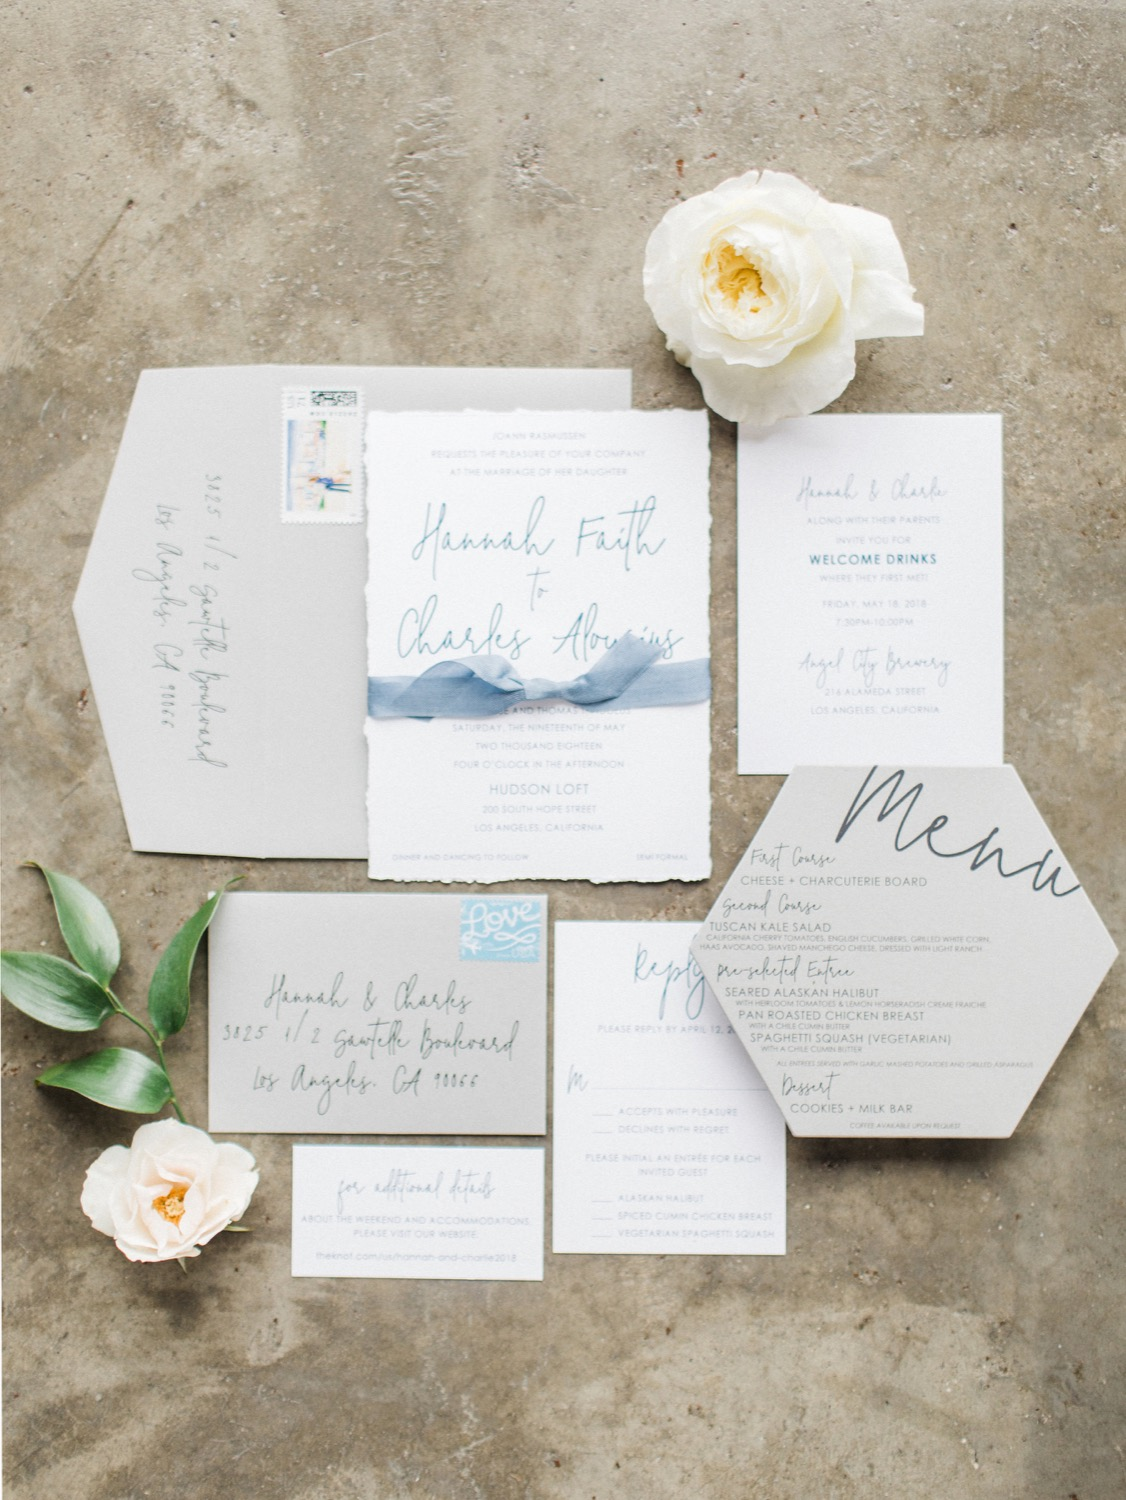 Hannah + Charlie - Too Chic & Little Shab Design Studio, Inc